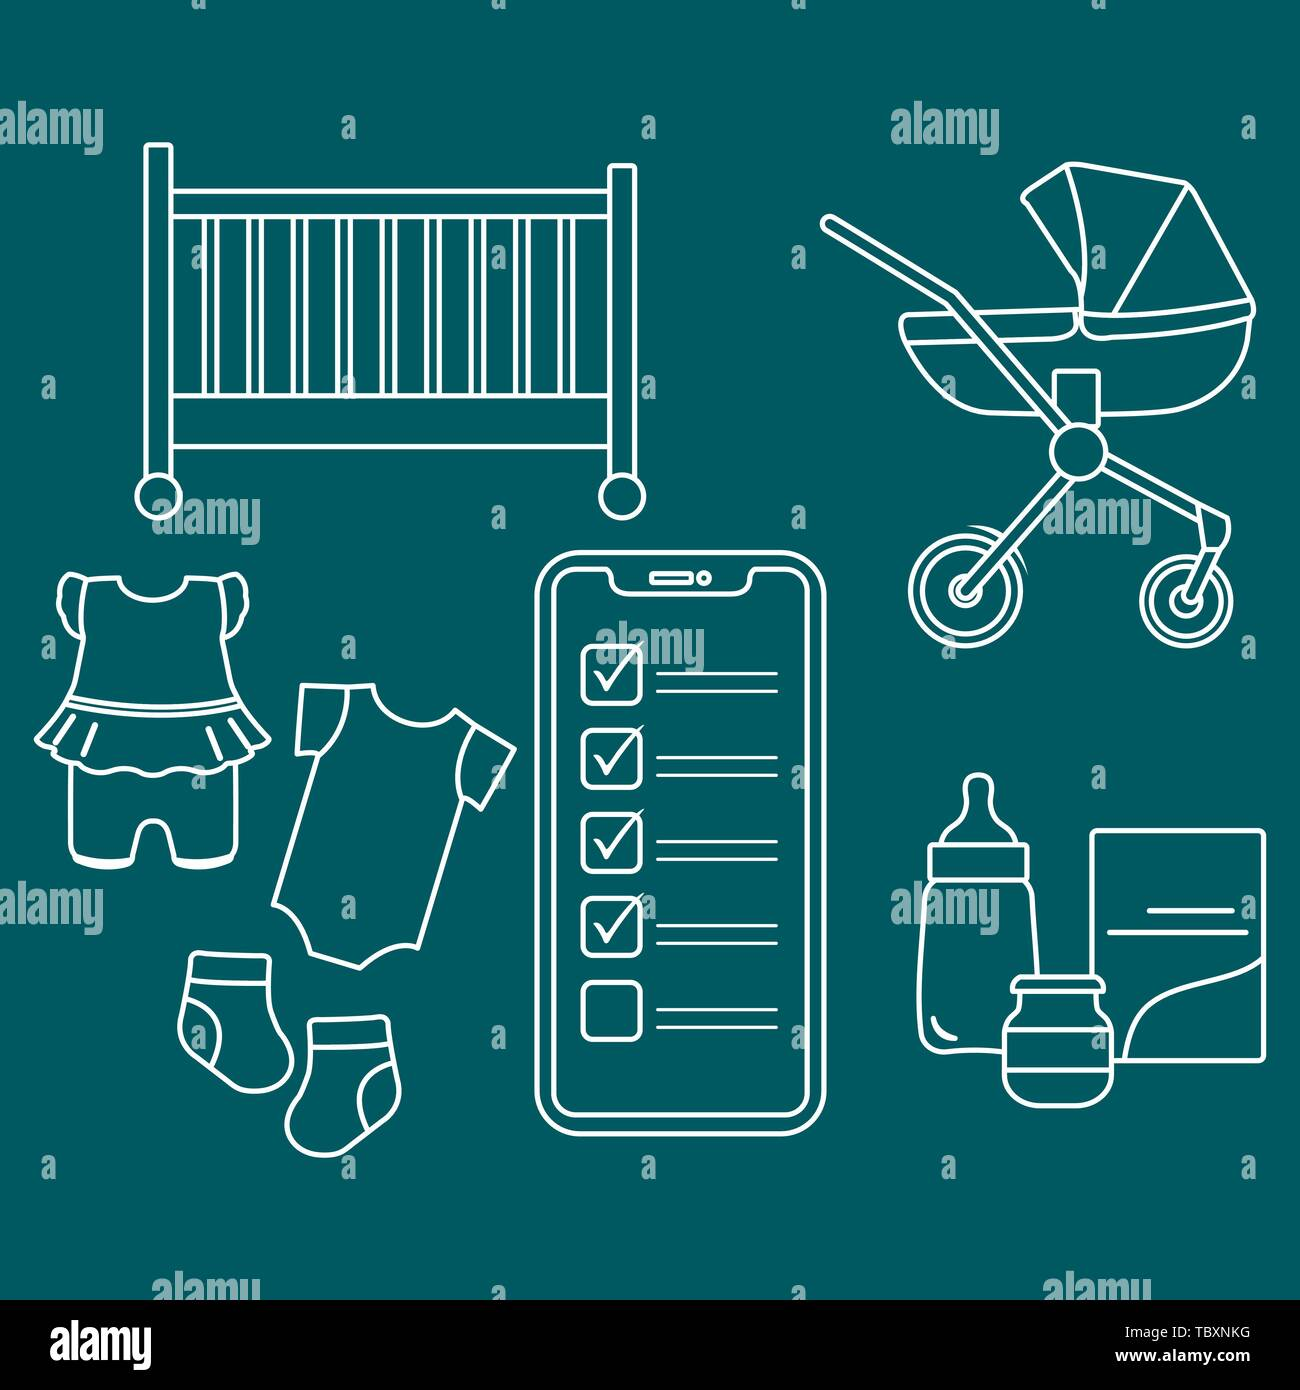 Newborn Babies Online Shopping Vector Illustration With Smartphone With Checklist Newborn